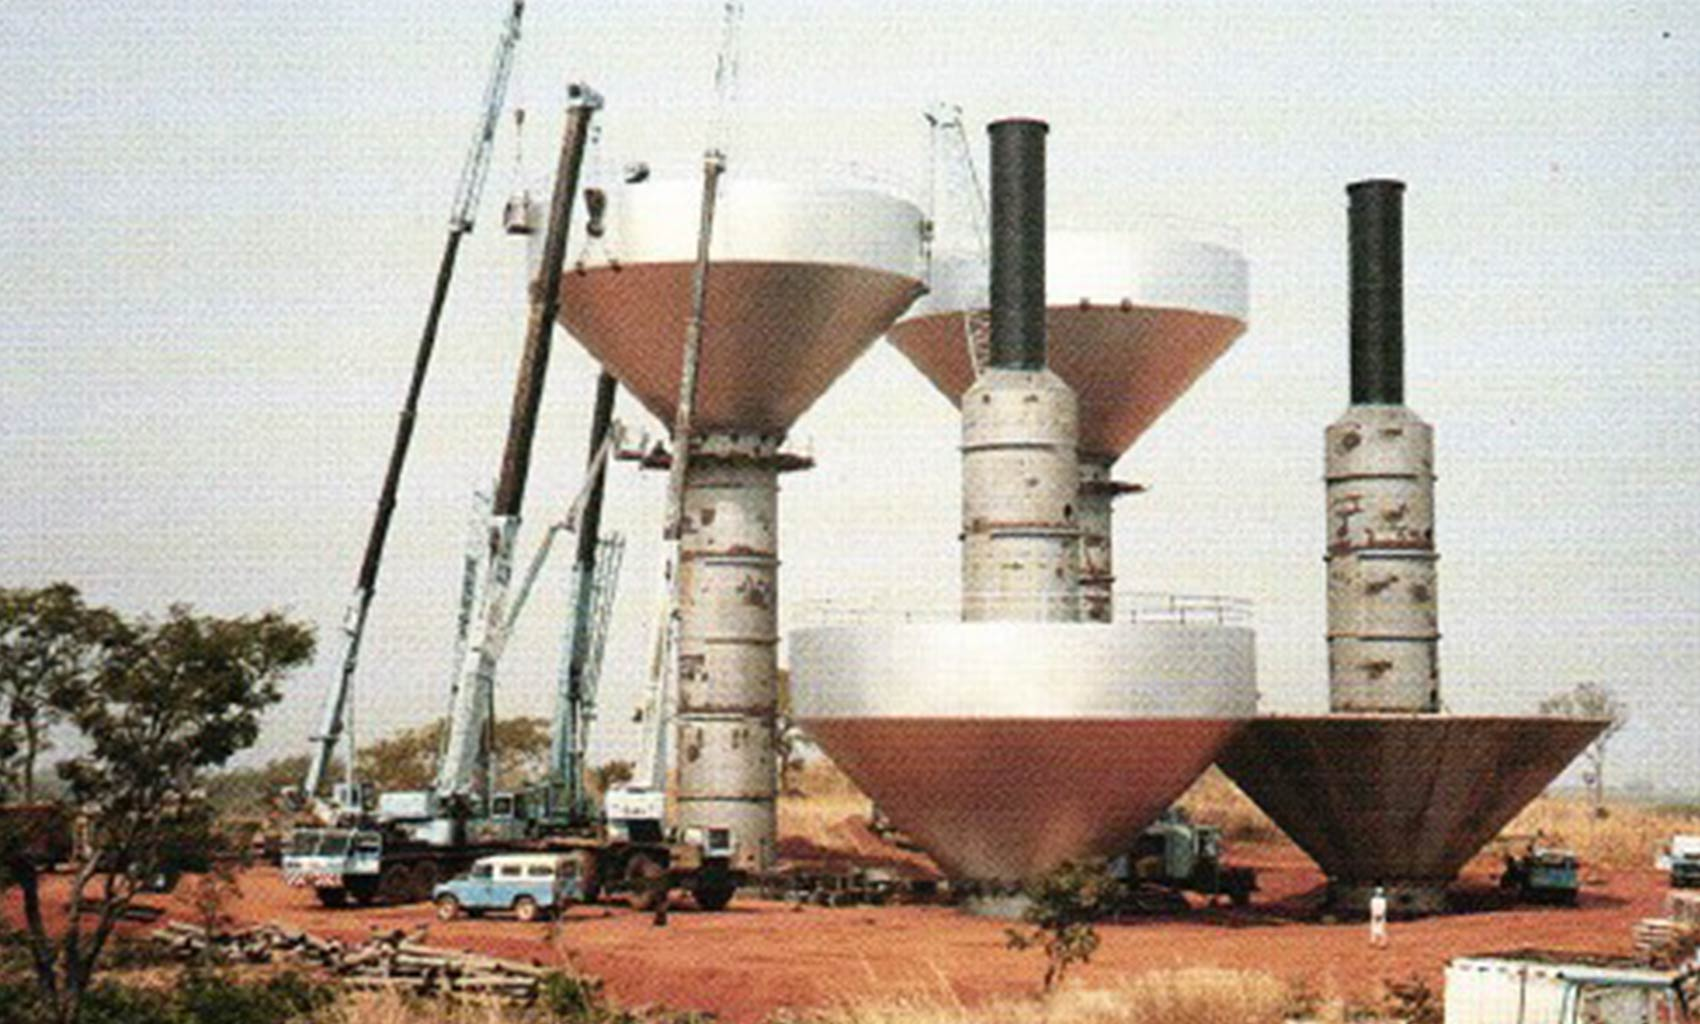 Niger state contract_Tower assembly at Kontagora 1989.jpg